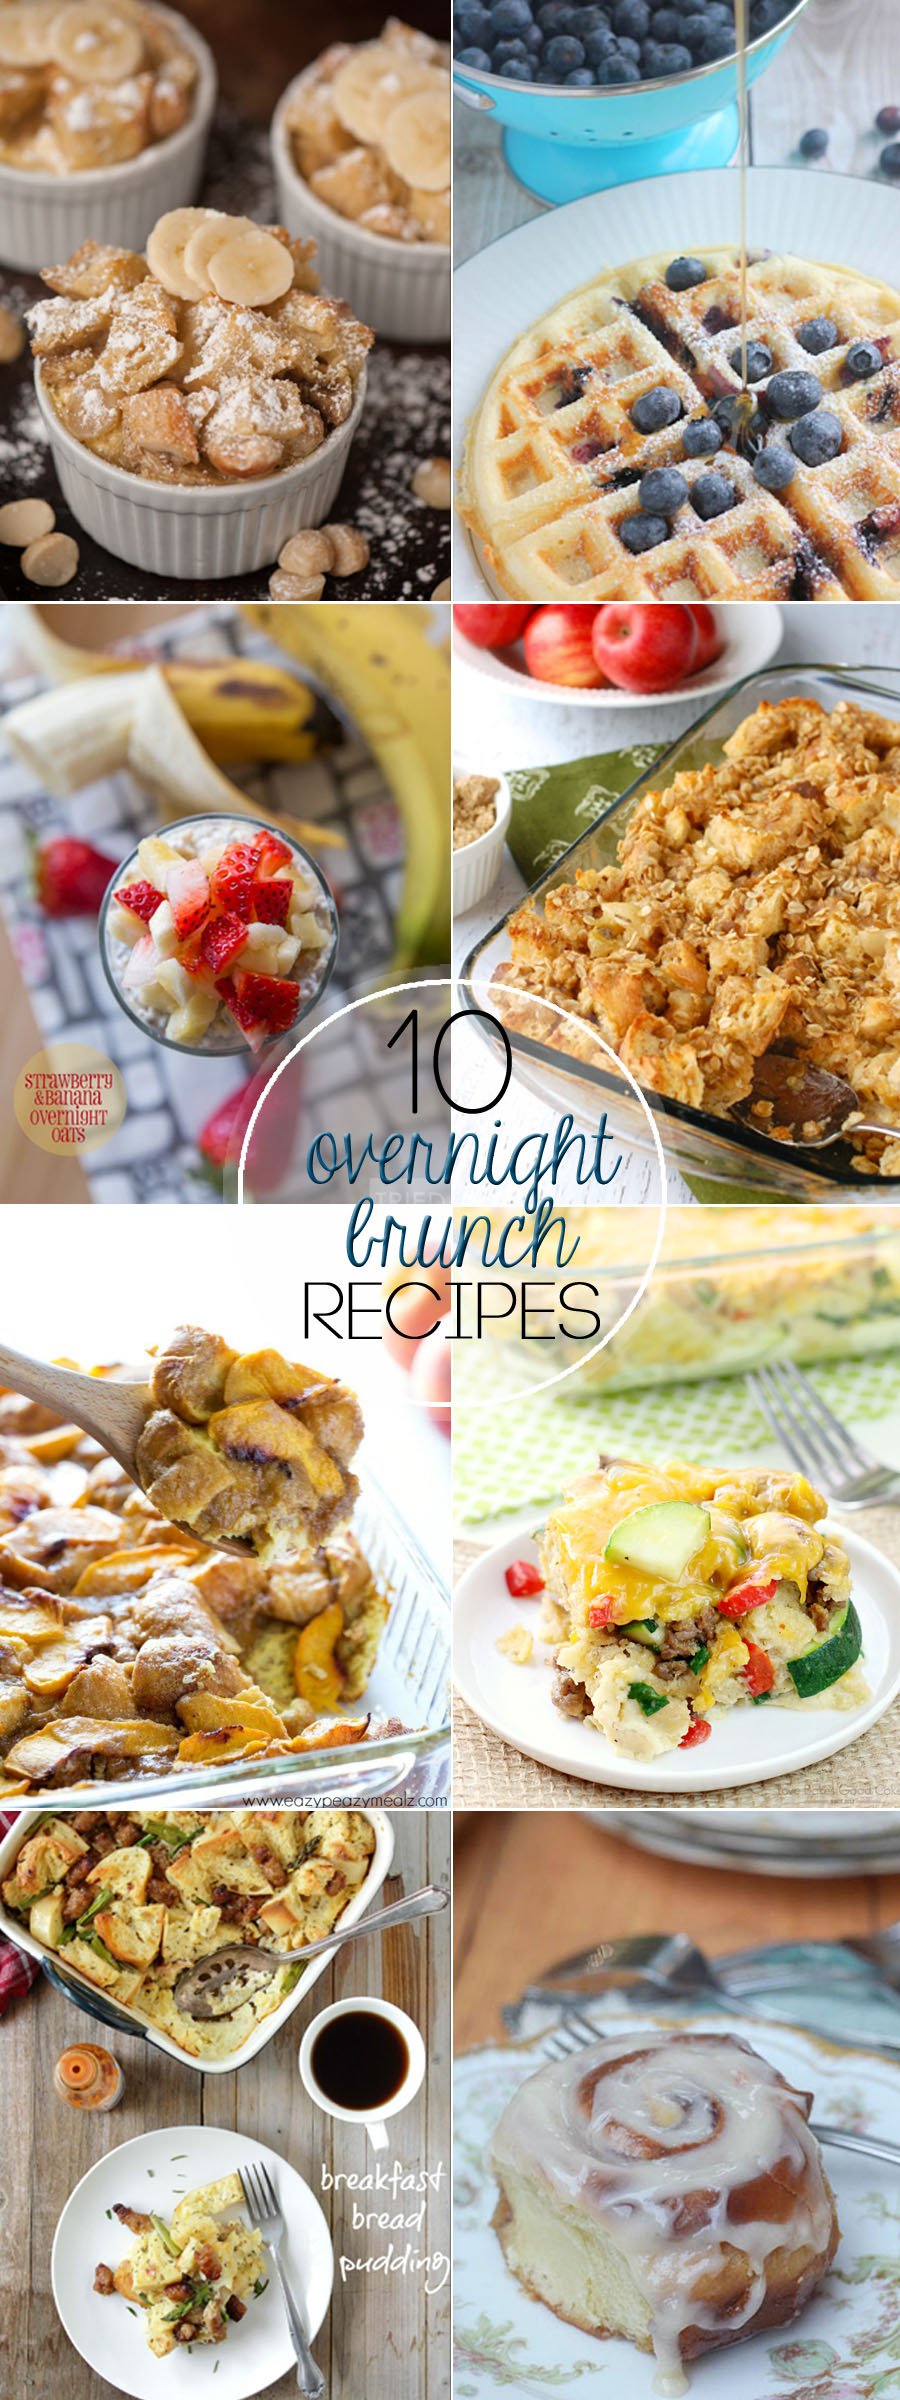 Is there anything better than waking up in the morning to an amazing breakfast that cooked all night long? I love these 10 Overnight Brunch recipes....they are definitely some of my family's favorites!